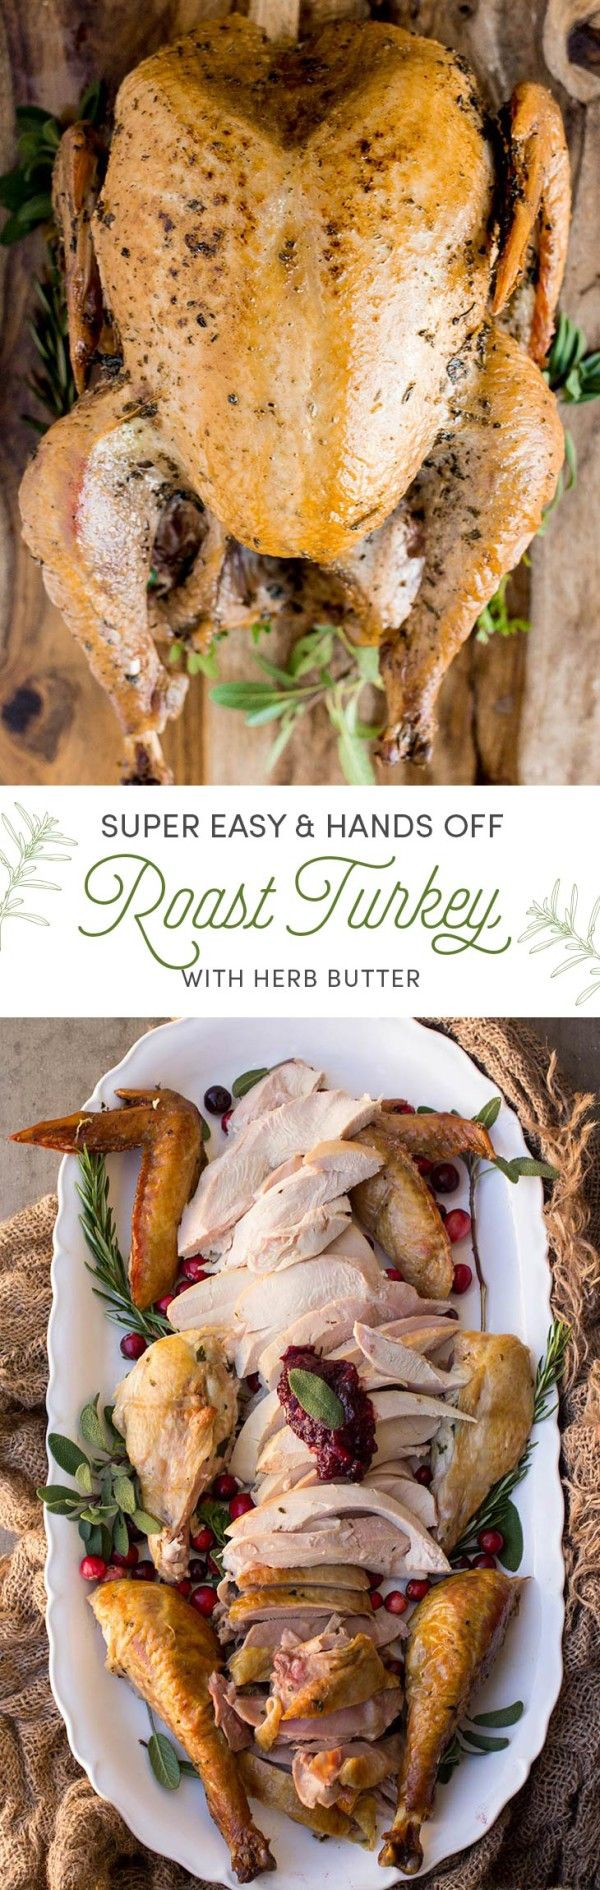 Easy Roast Turkey with Herb Butter is Simple, Juicy, and Delicious